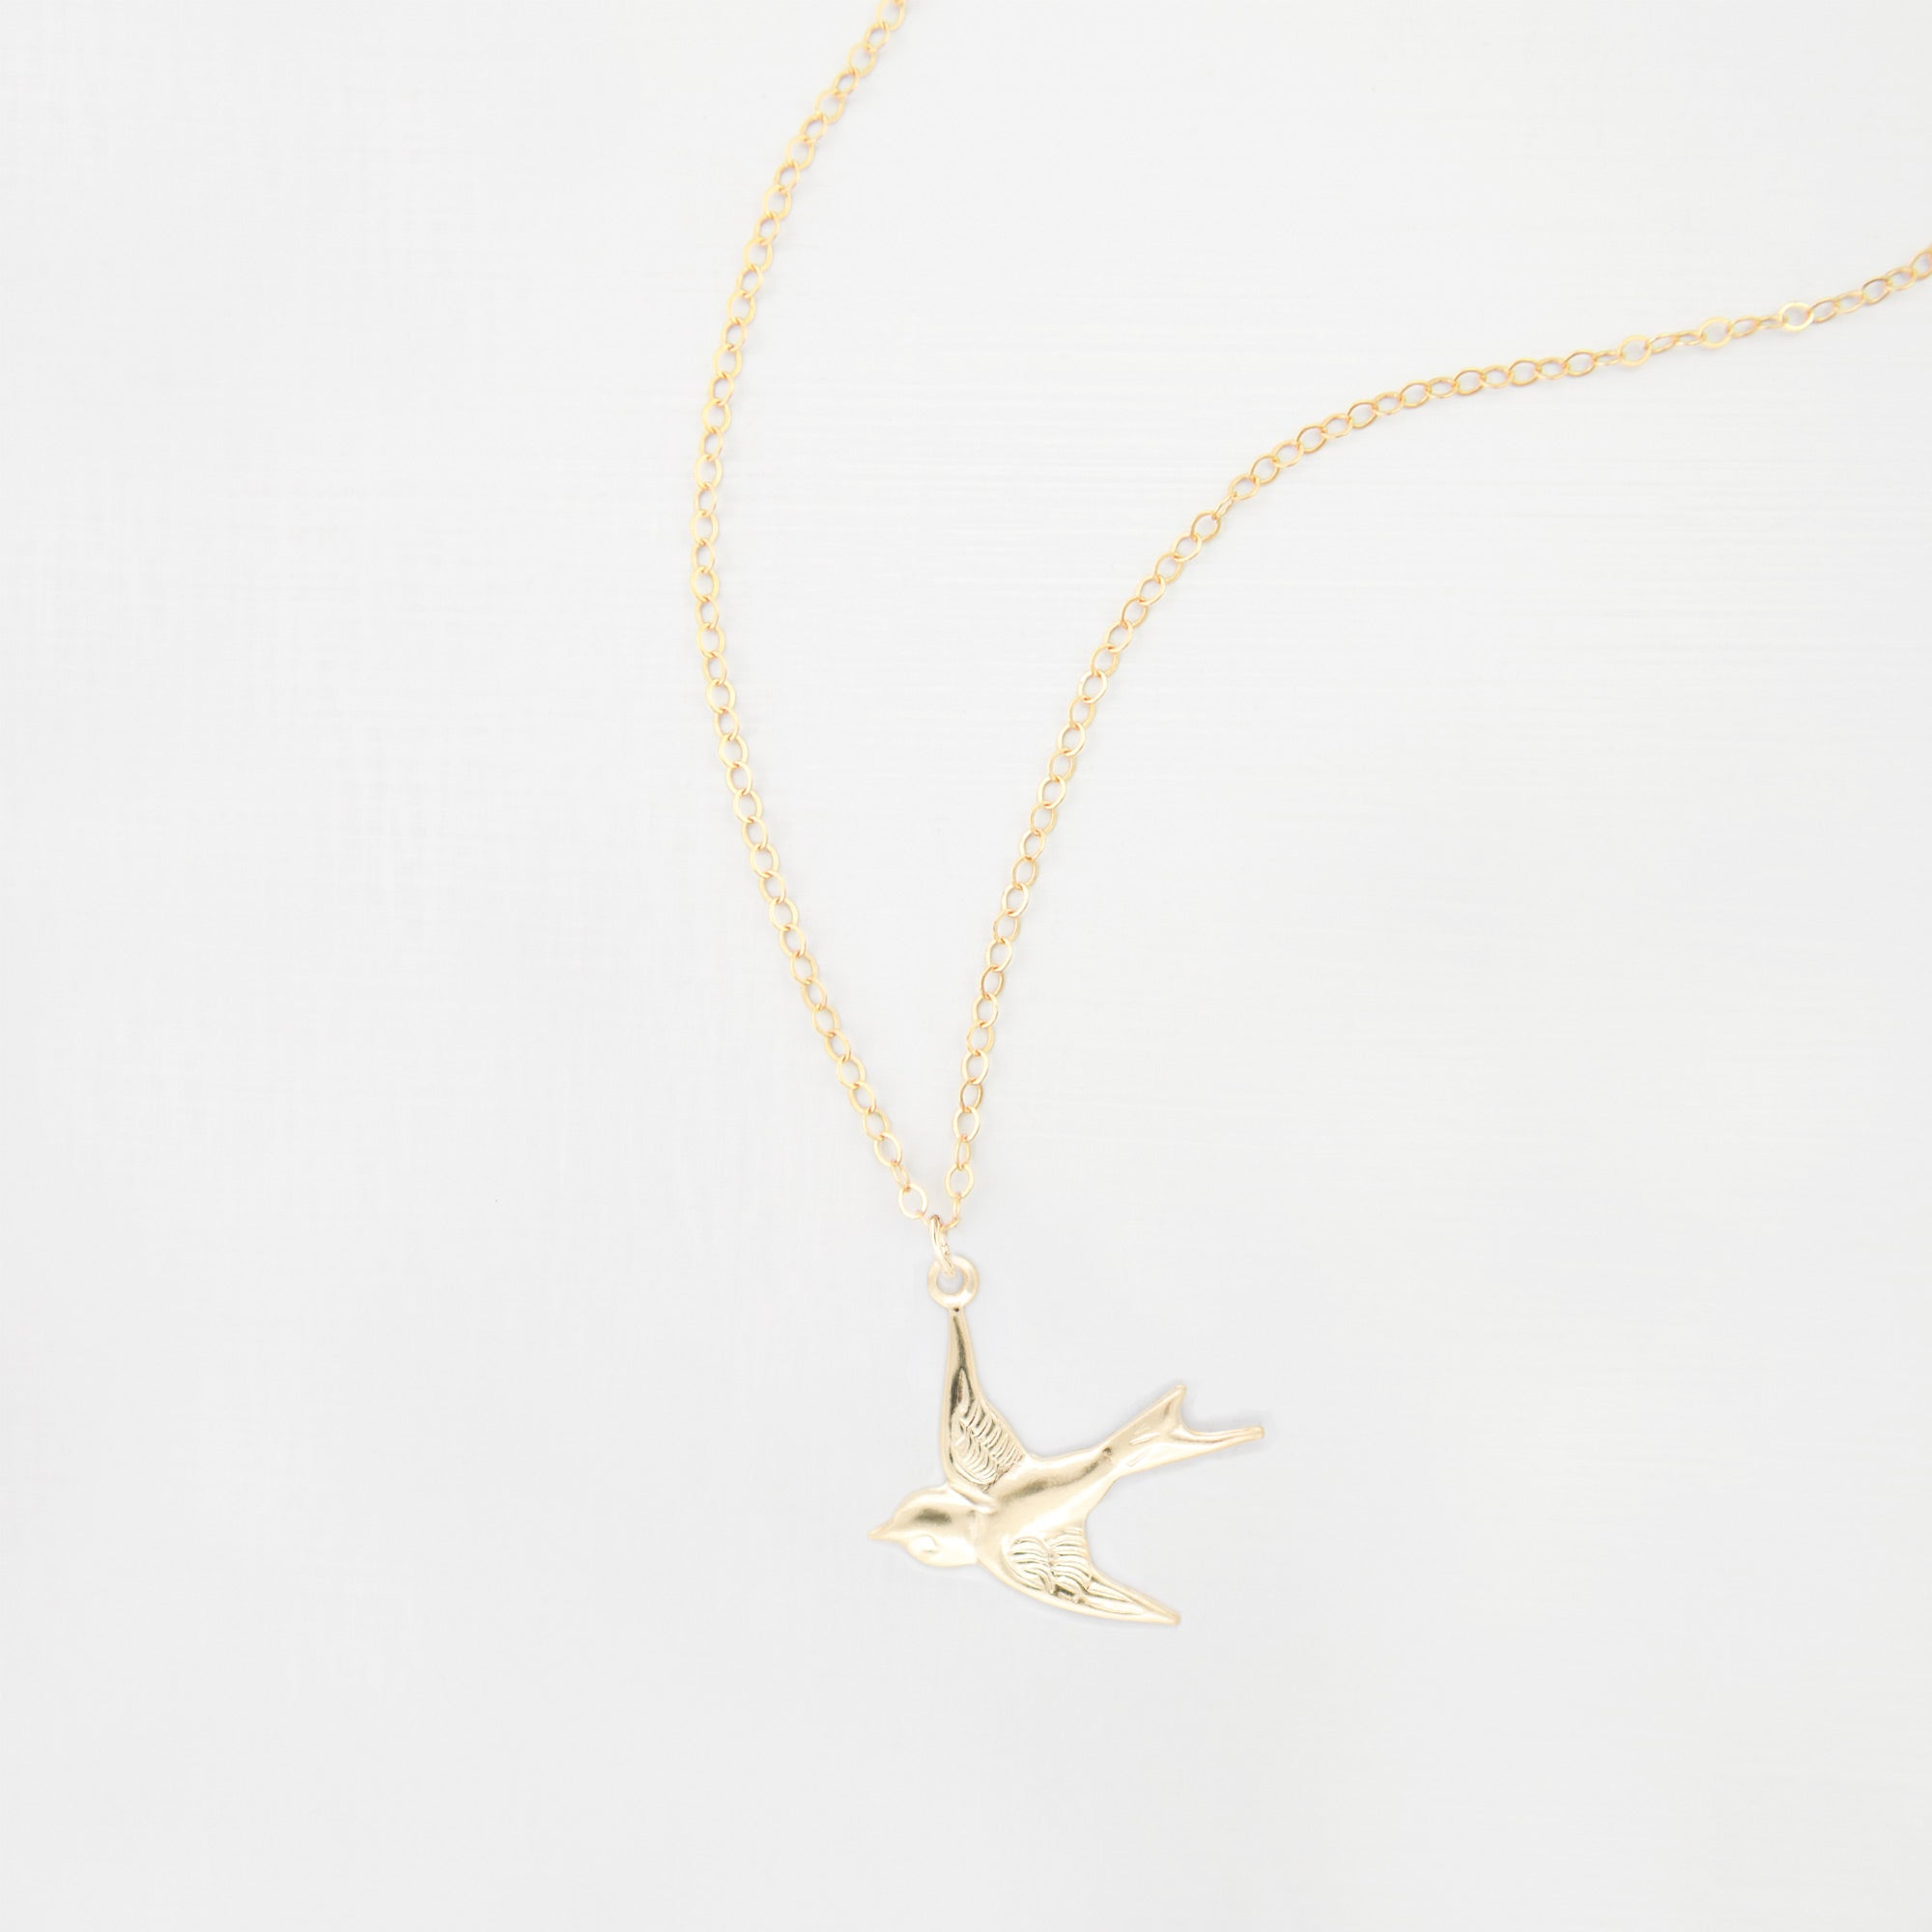 Swallow charm necklace 'Ren'